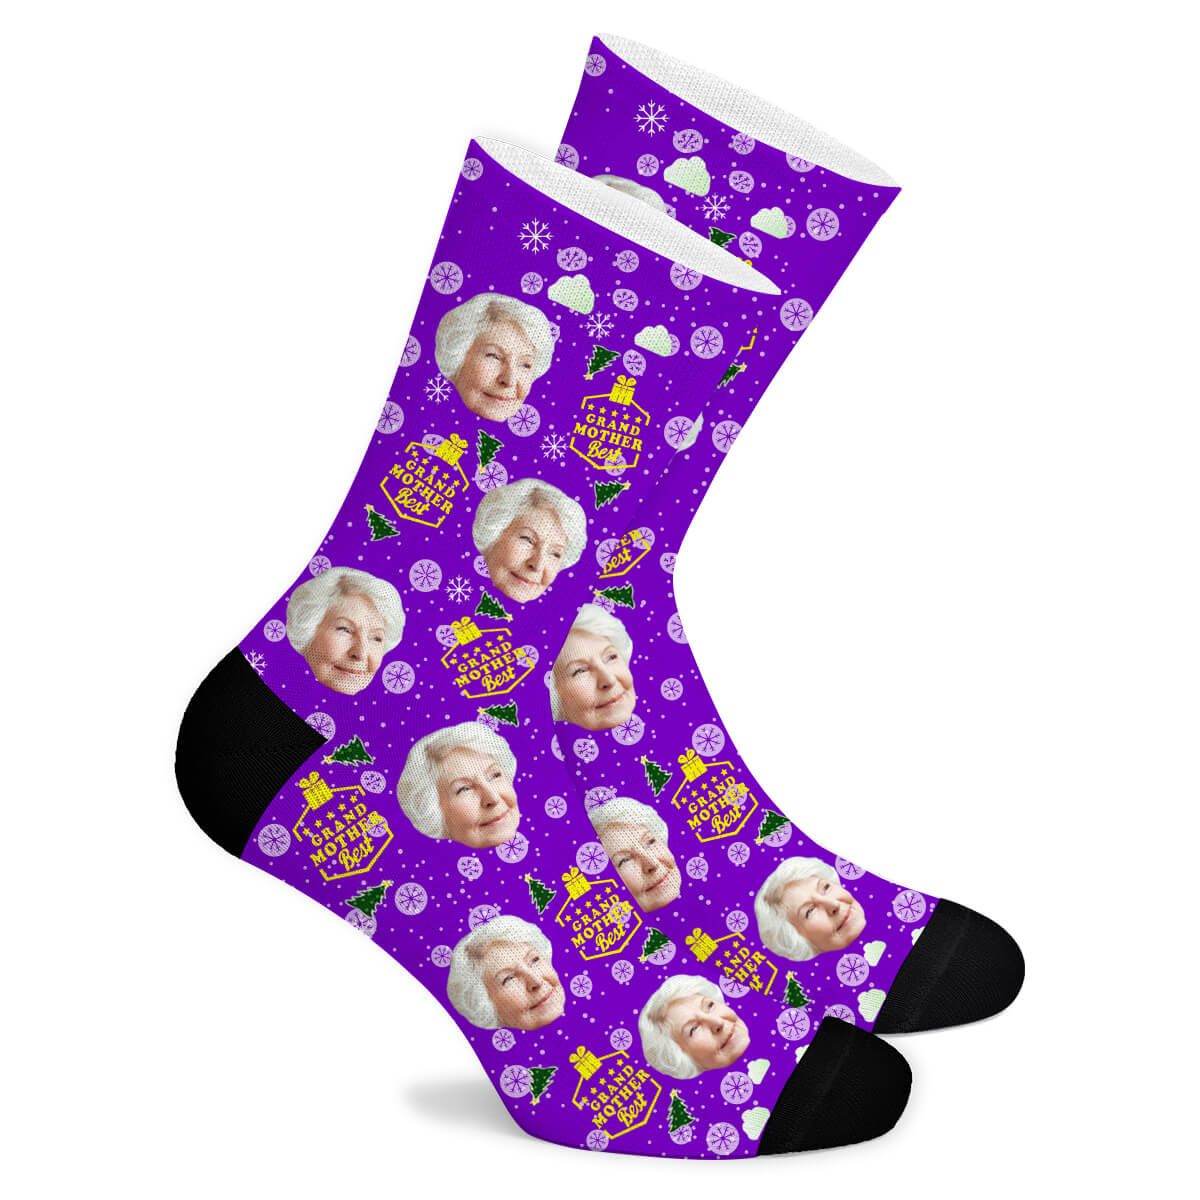 Christmas Custom Socks Grandmother - Make Face Socks